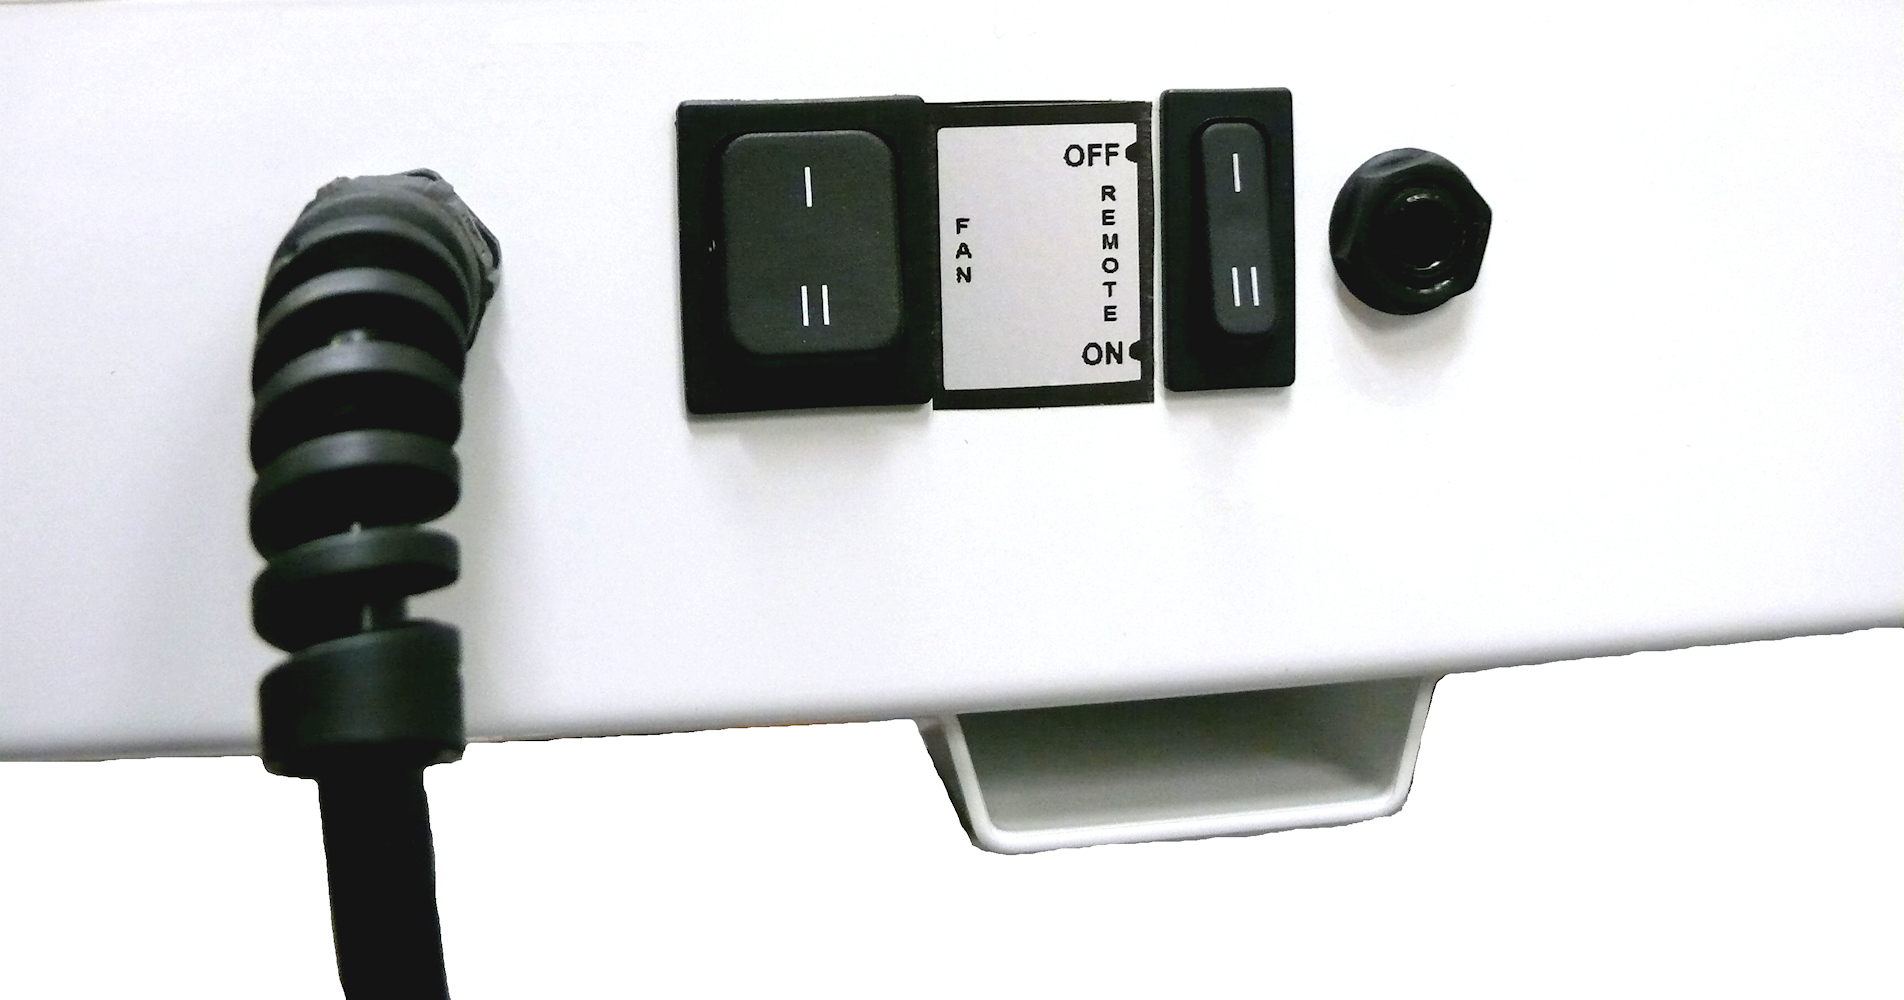 dsr20 dsr12 control switches dehumidifiers by Ecor Pro